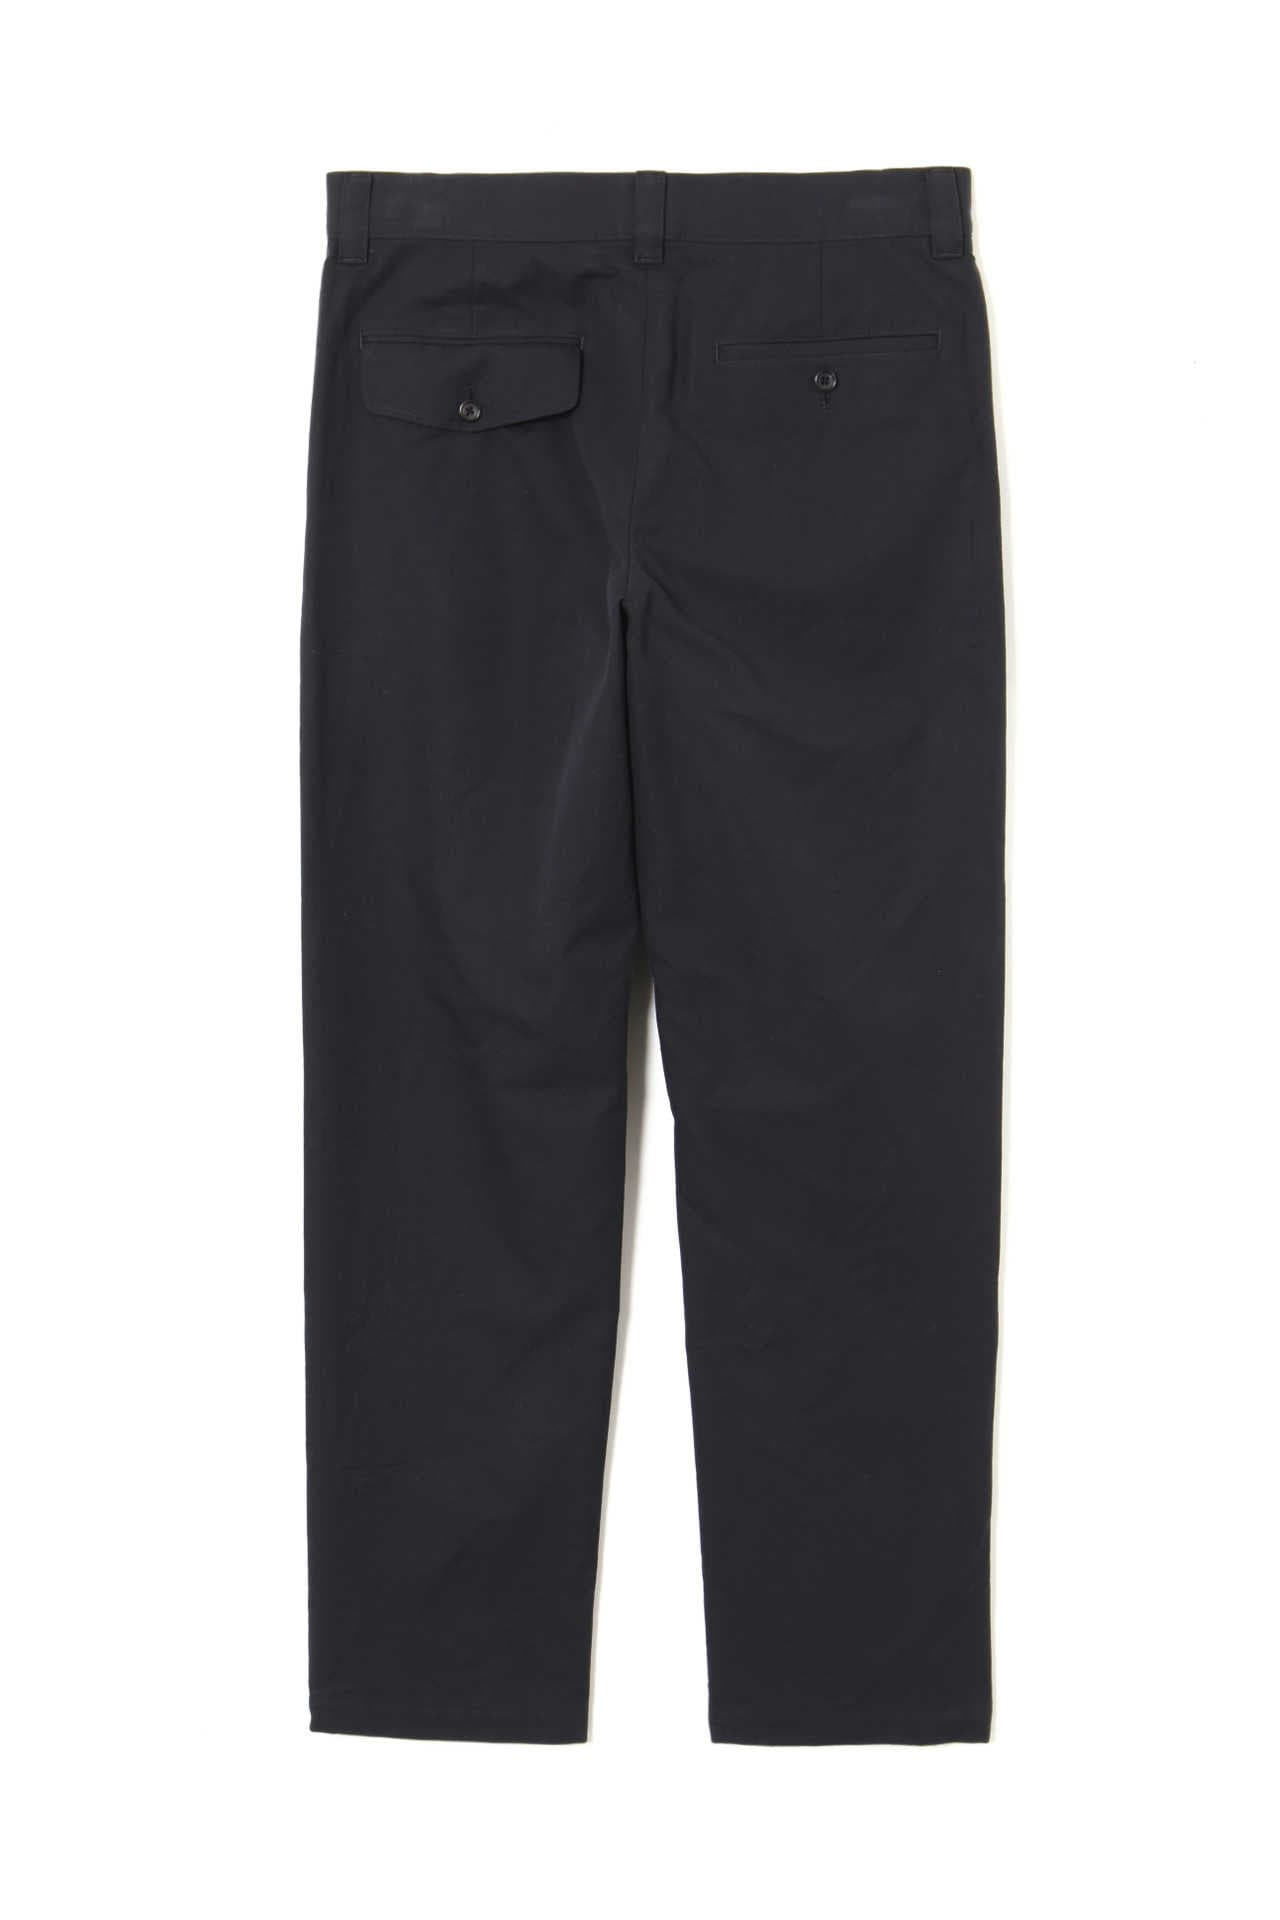 LIGHTWEIGHT DRY COTTON TWILL6